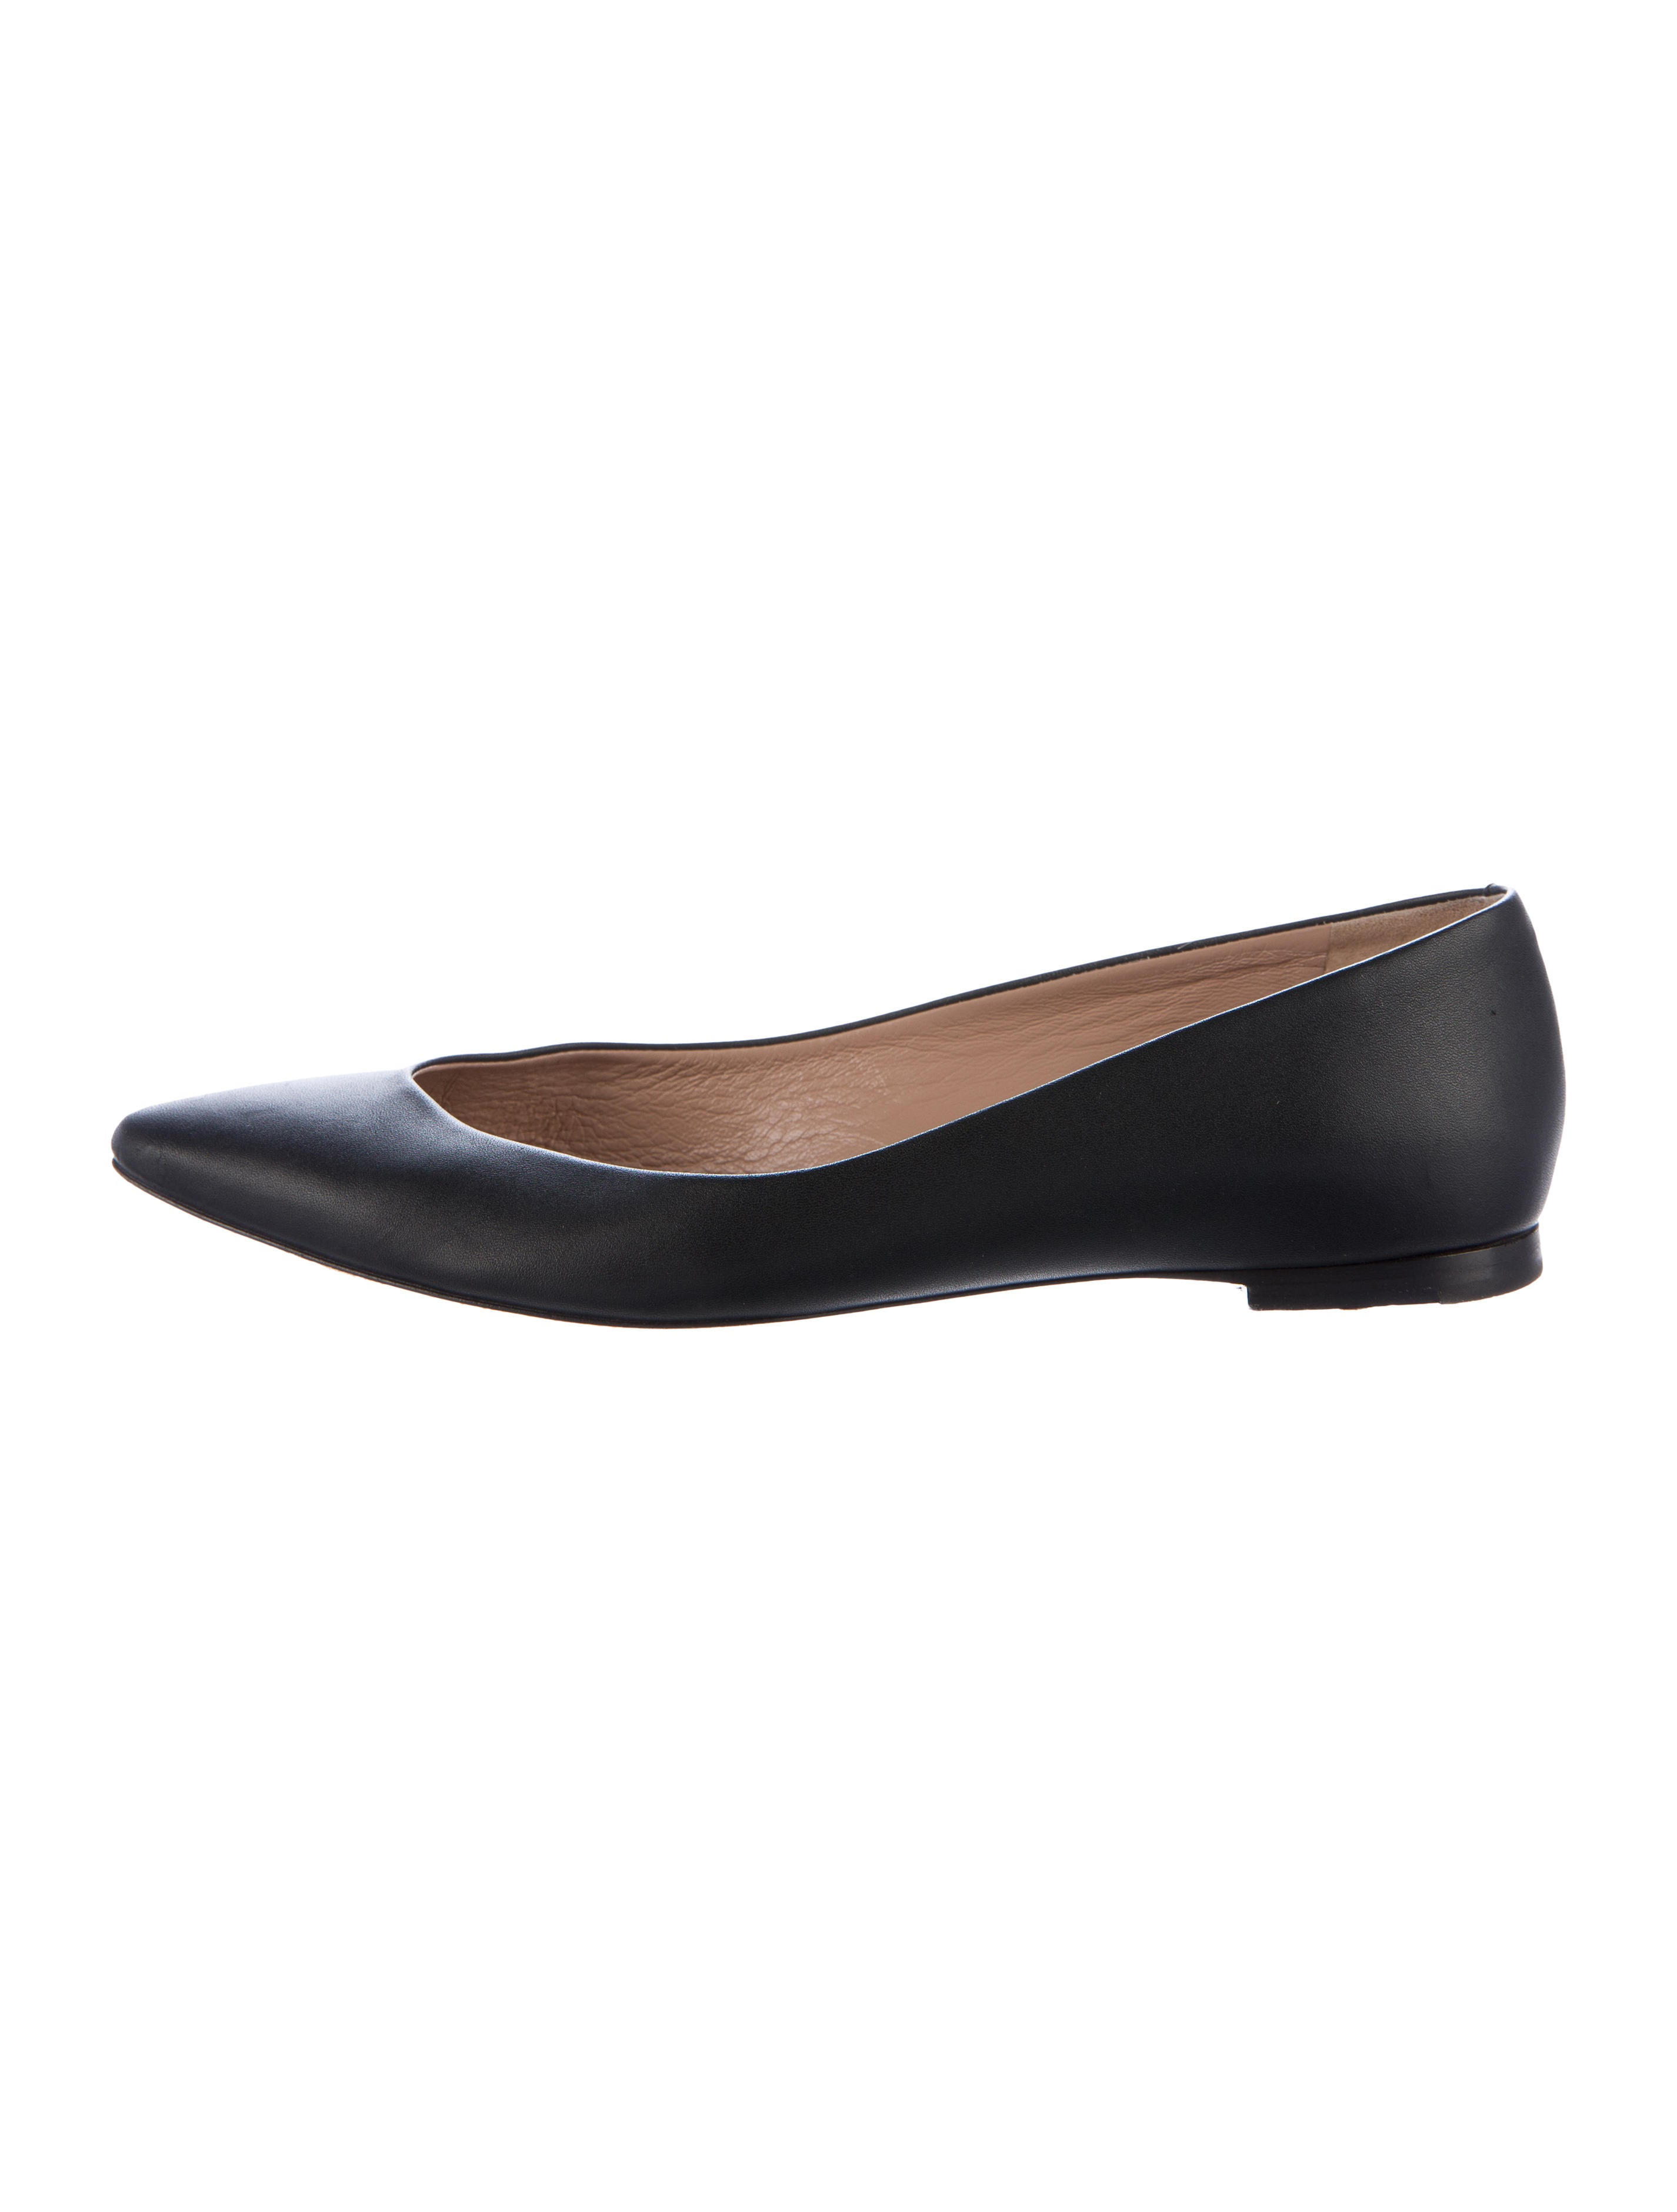 big discount sale online free shipping best prices Chloé Leather Pointed-Toe Flats 9h4CW